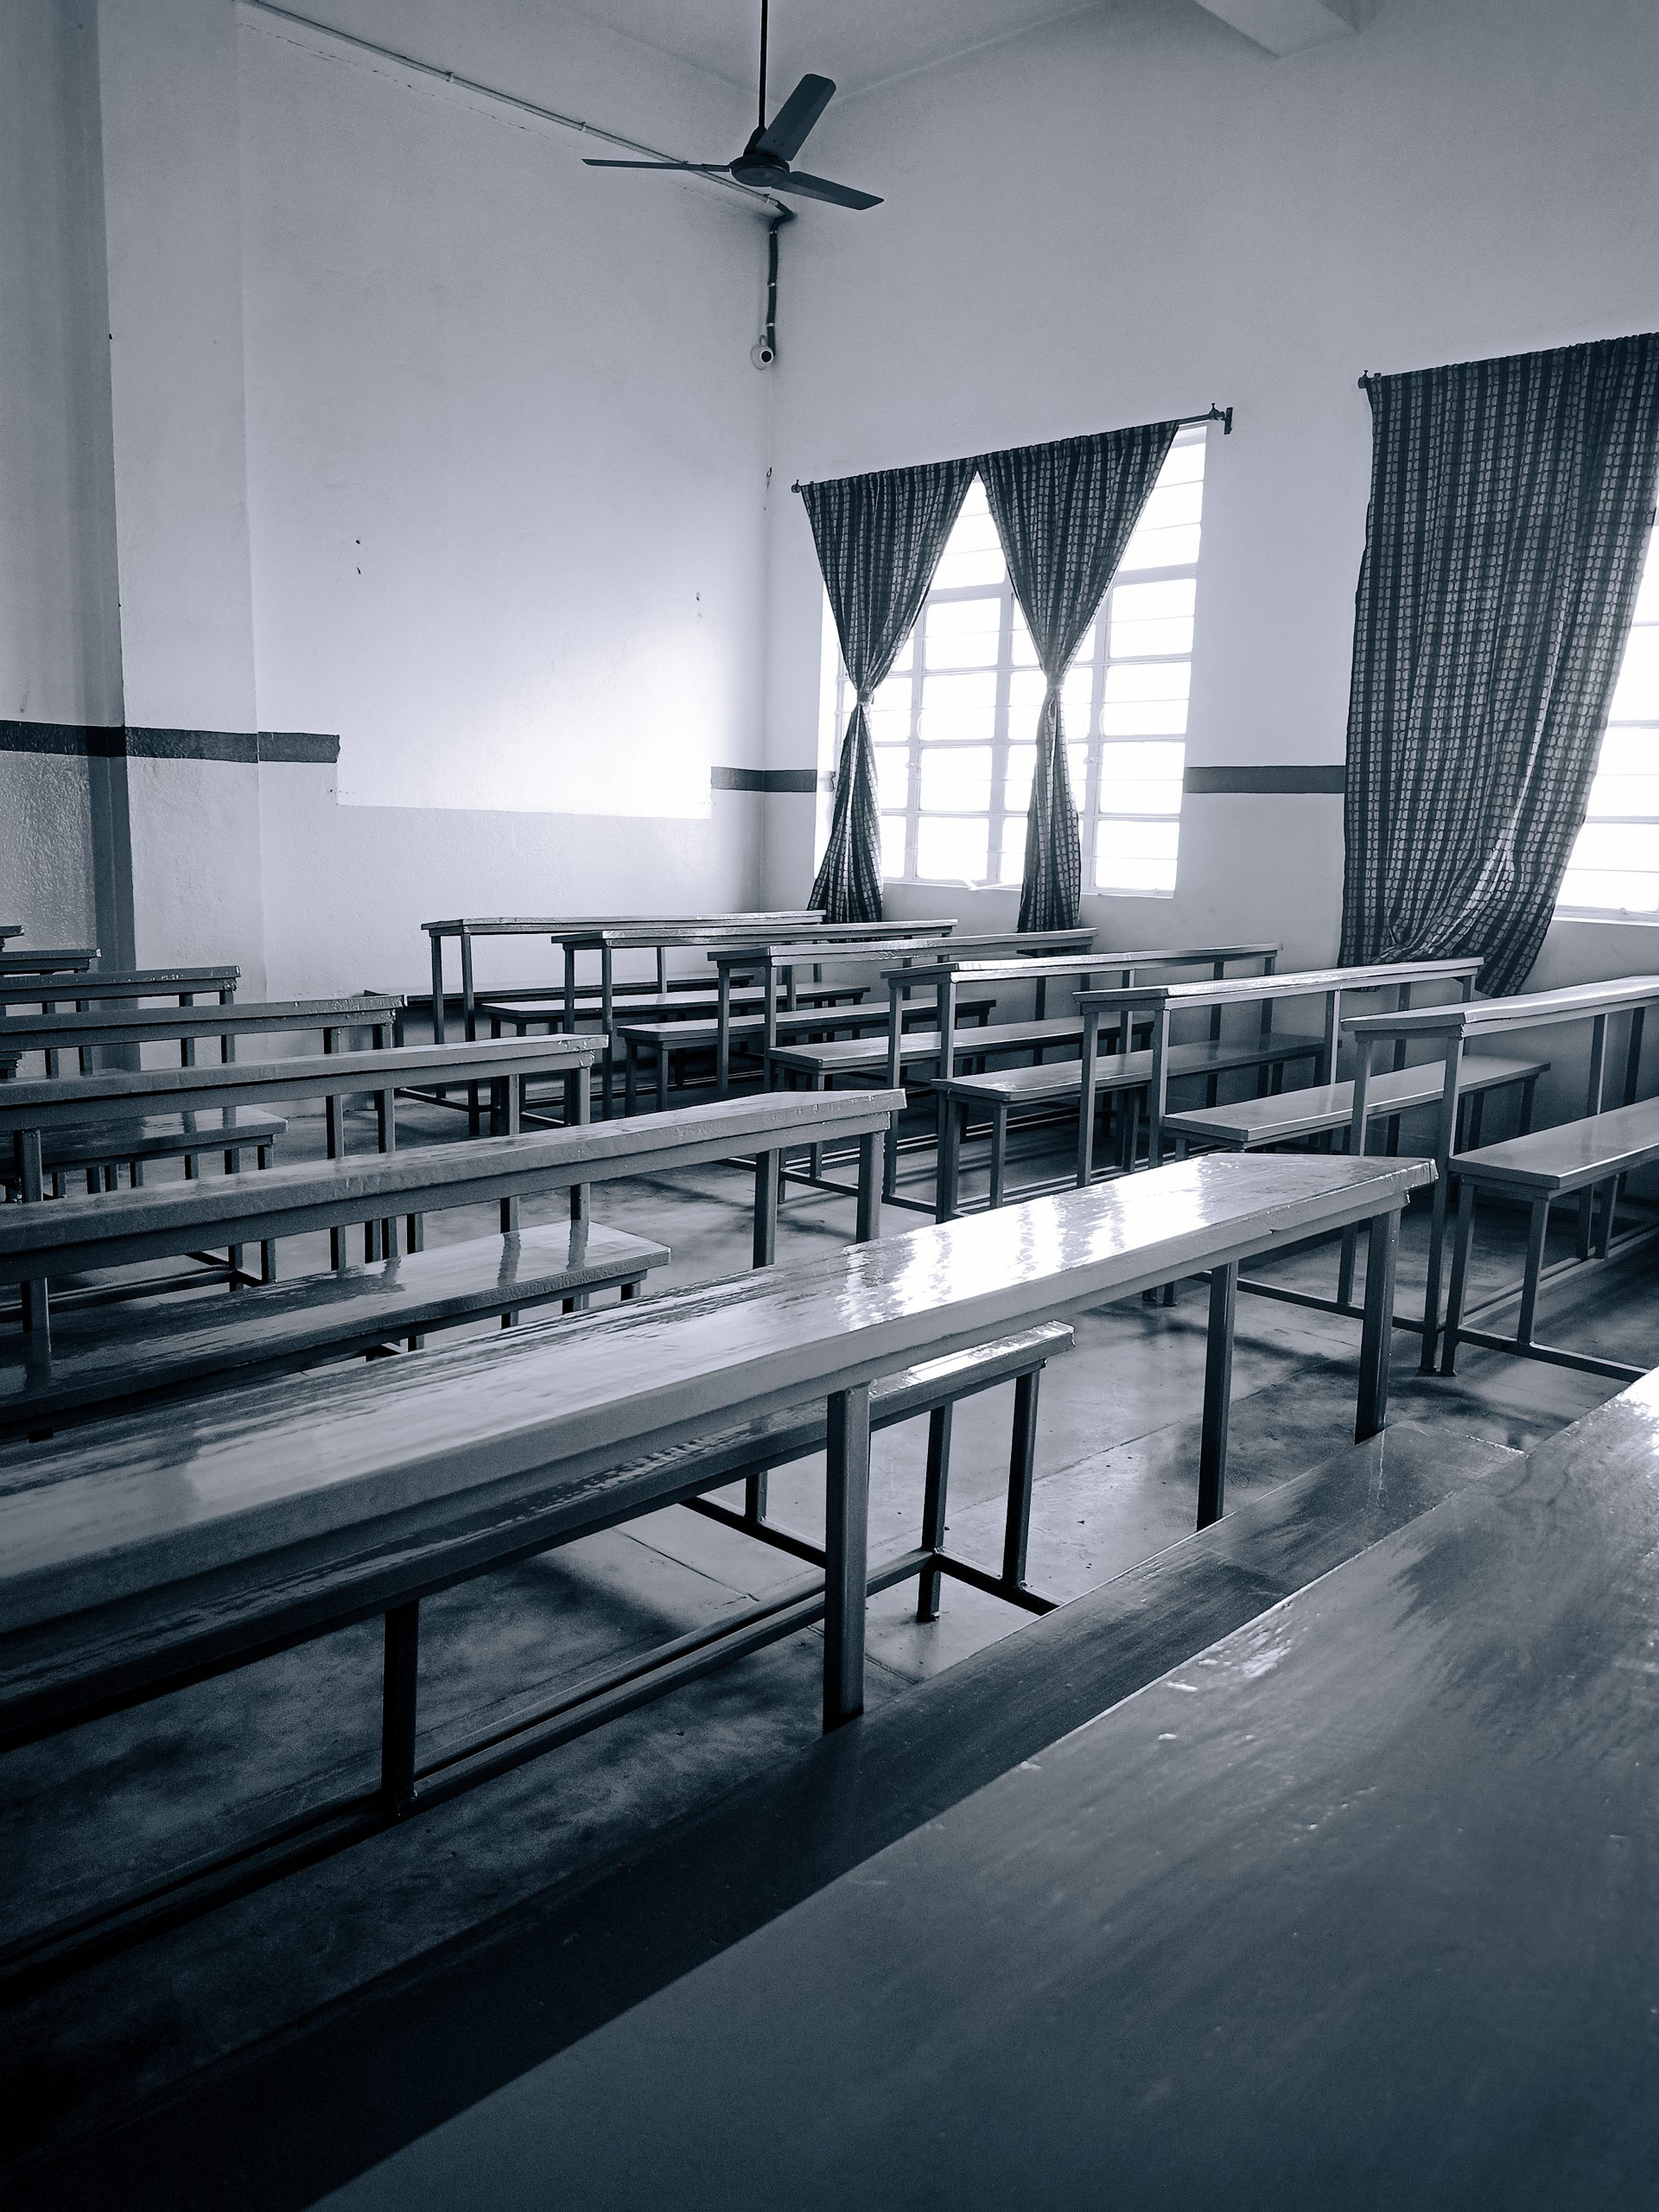 Benches in the class room